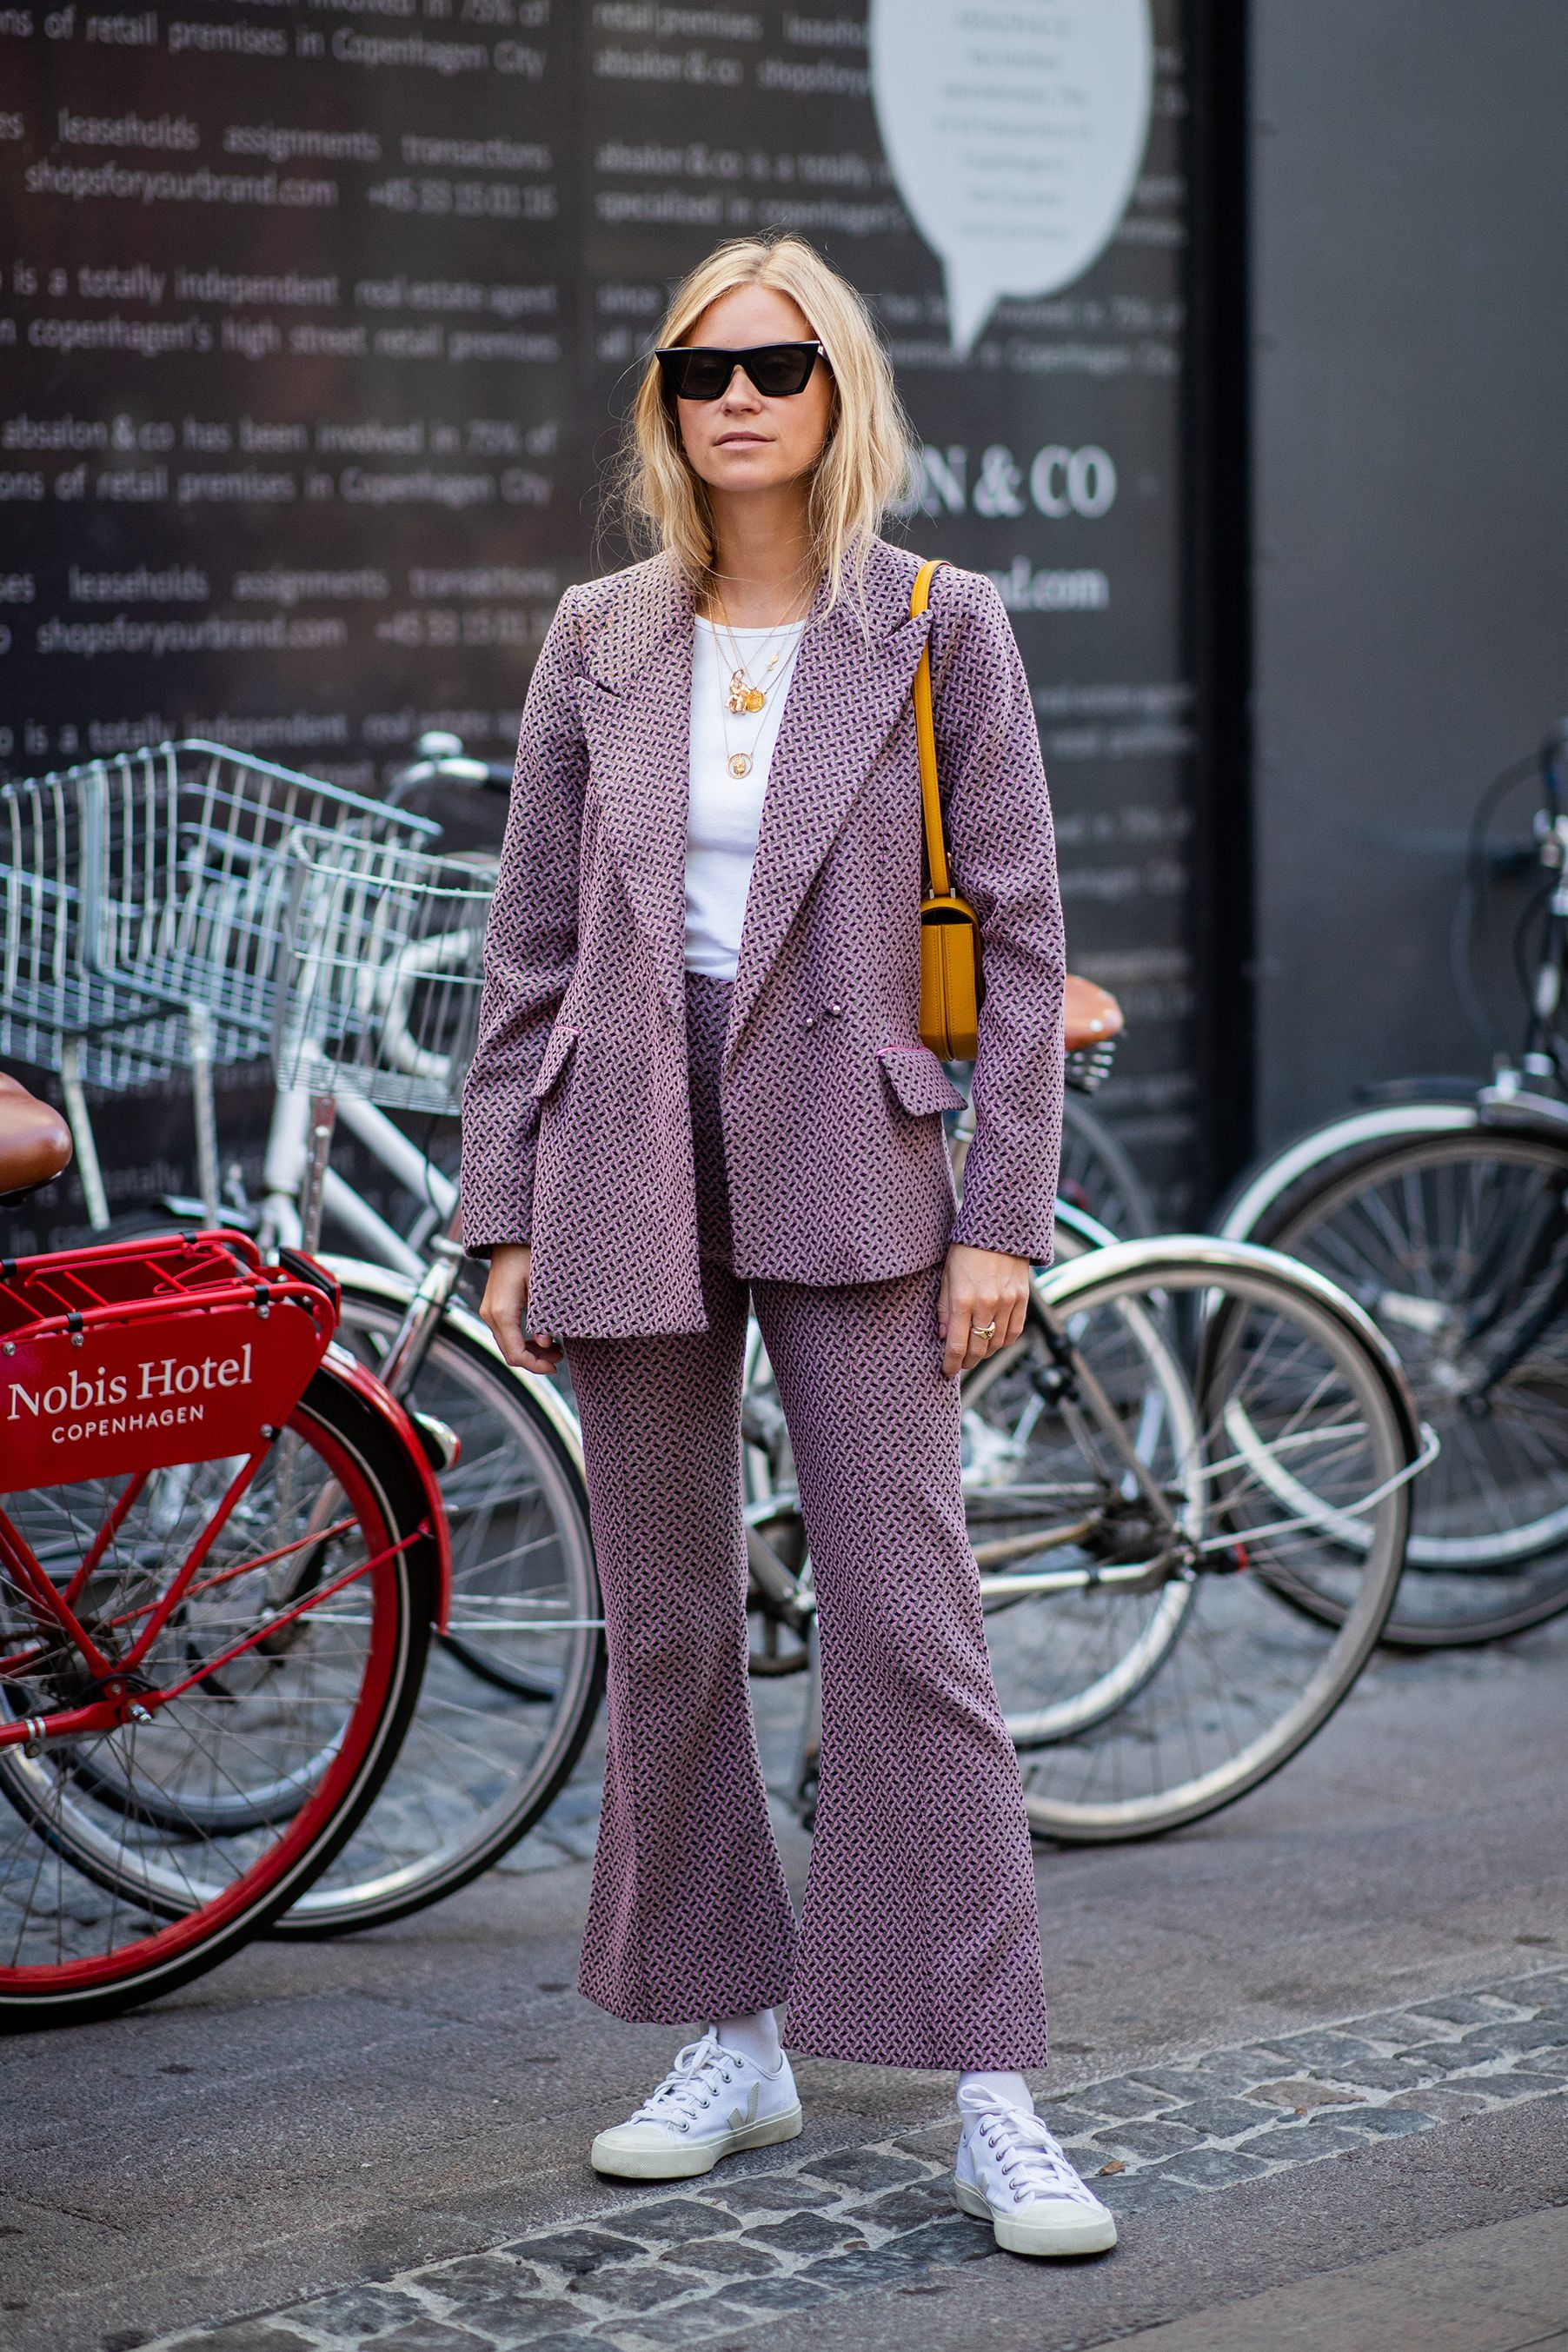 How To Wear Pantsuits Power Suit Trend For Women